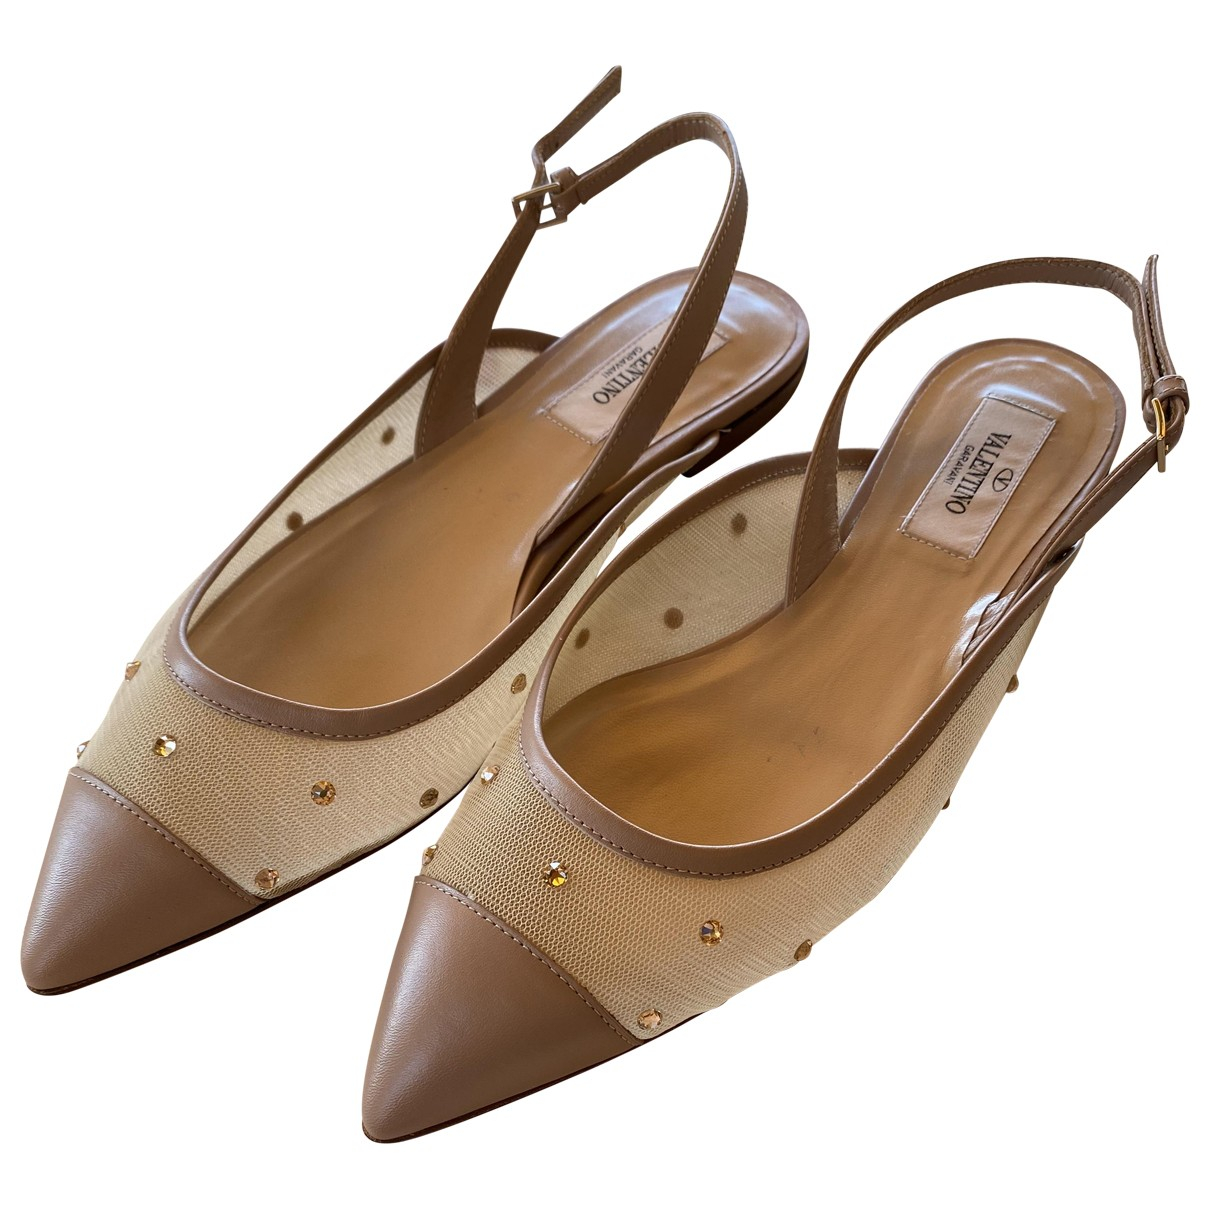 Valentino Garavani \N Beige Leather Ballet flats for Women 37 EU